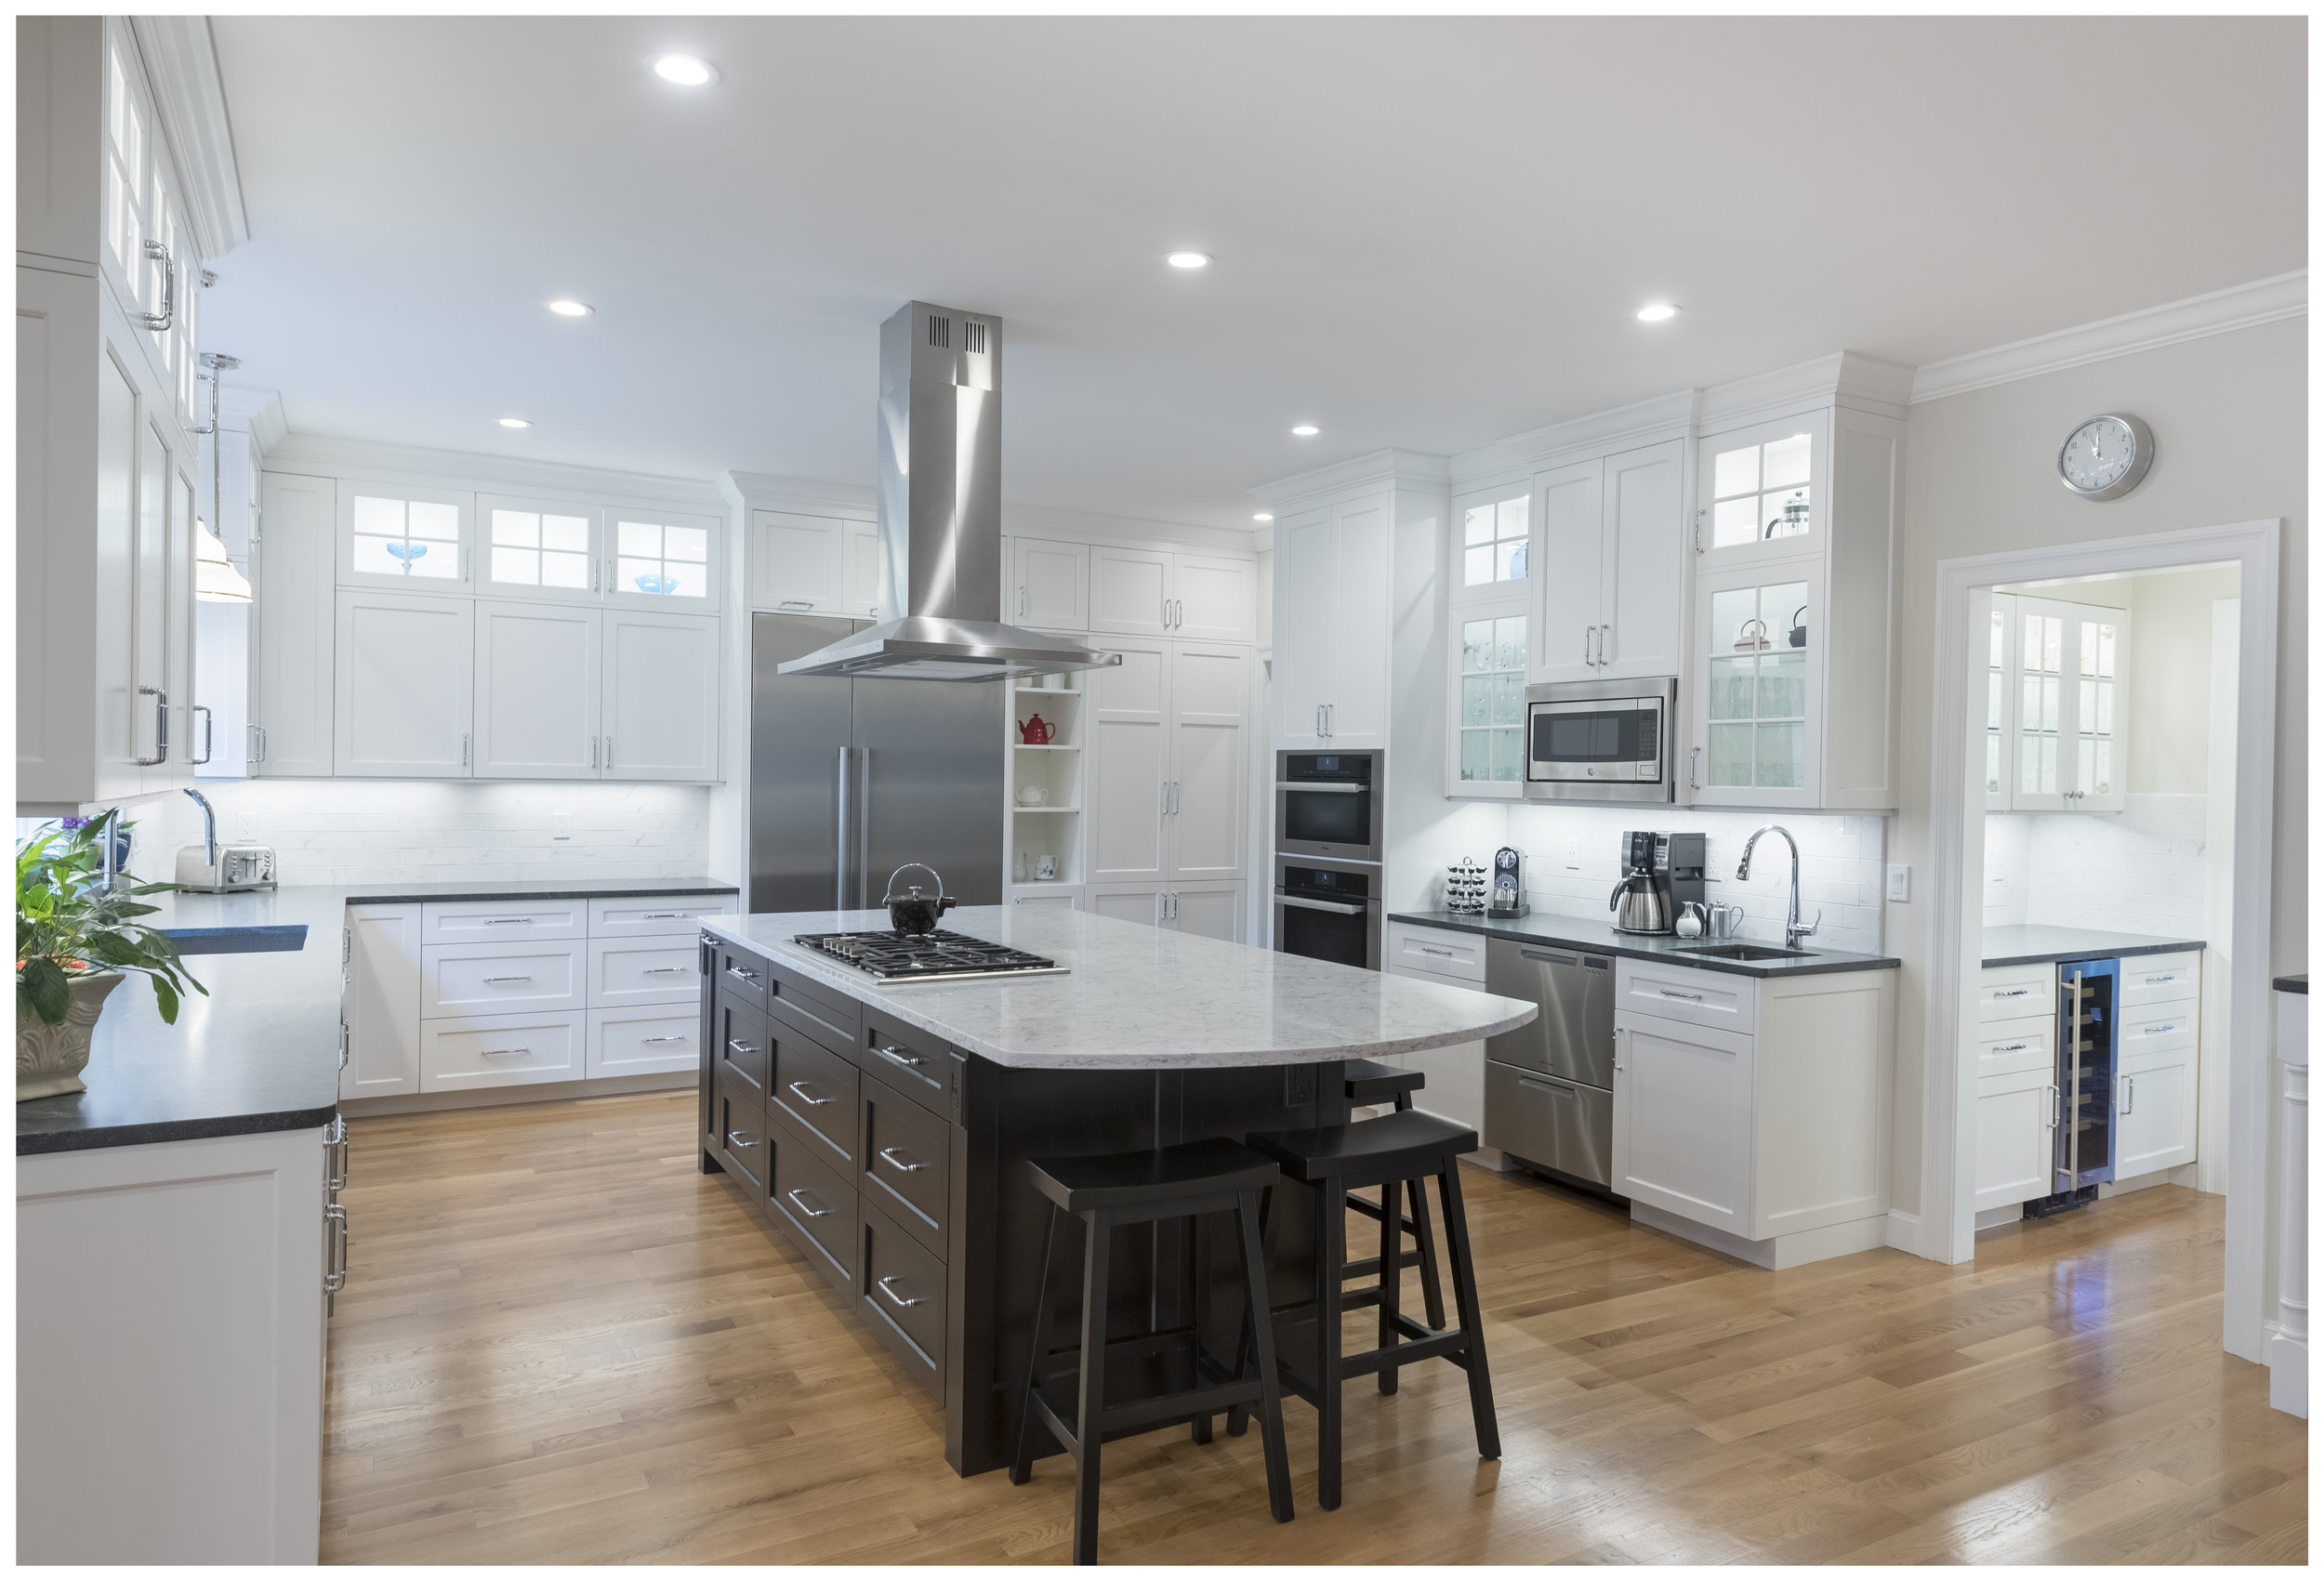 KitchenVisions-Transitional-Kitchen-Acton-001.jpg